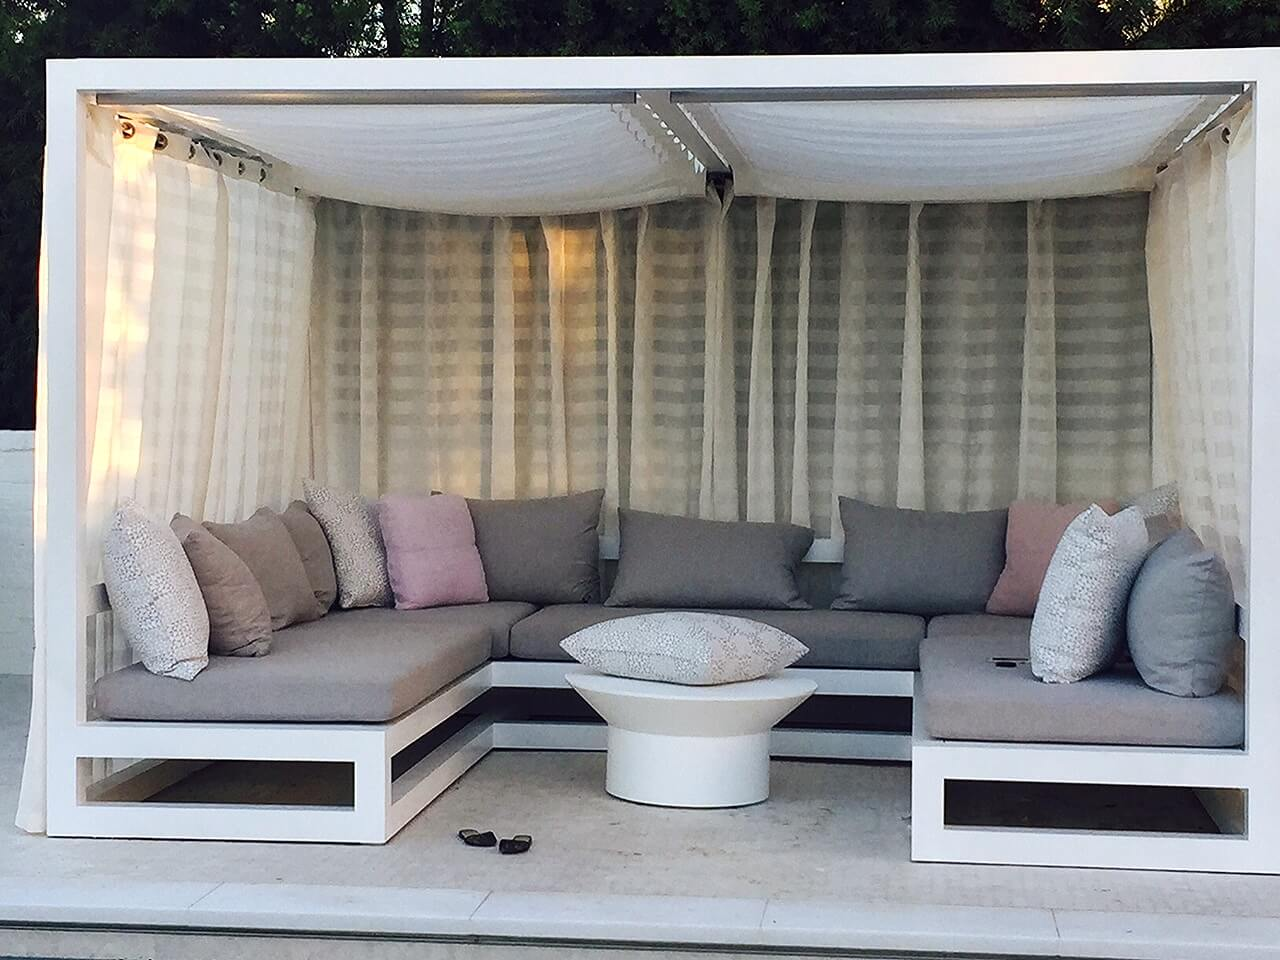 Grey outdoor sofa with cushions